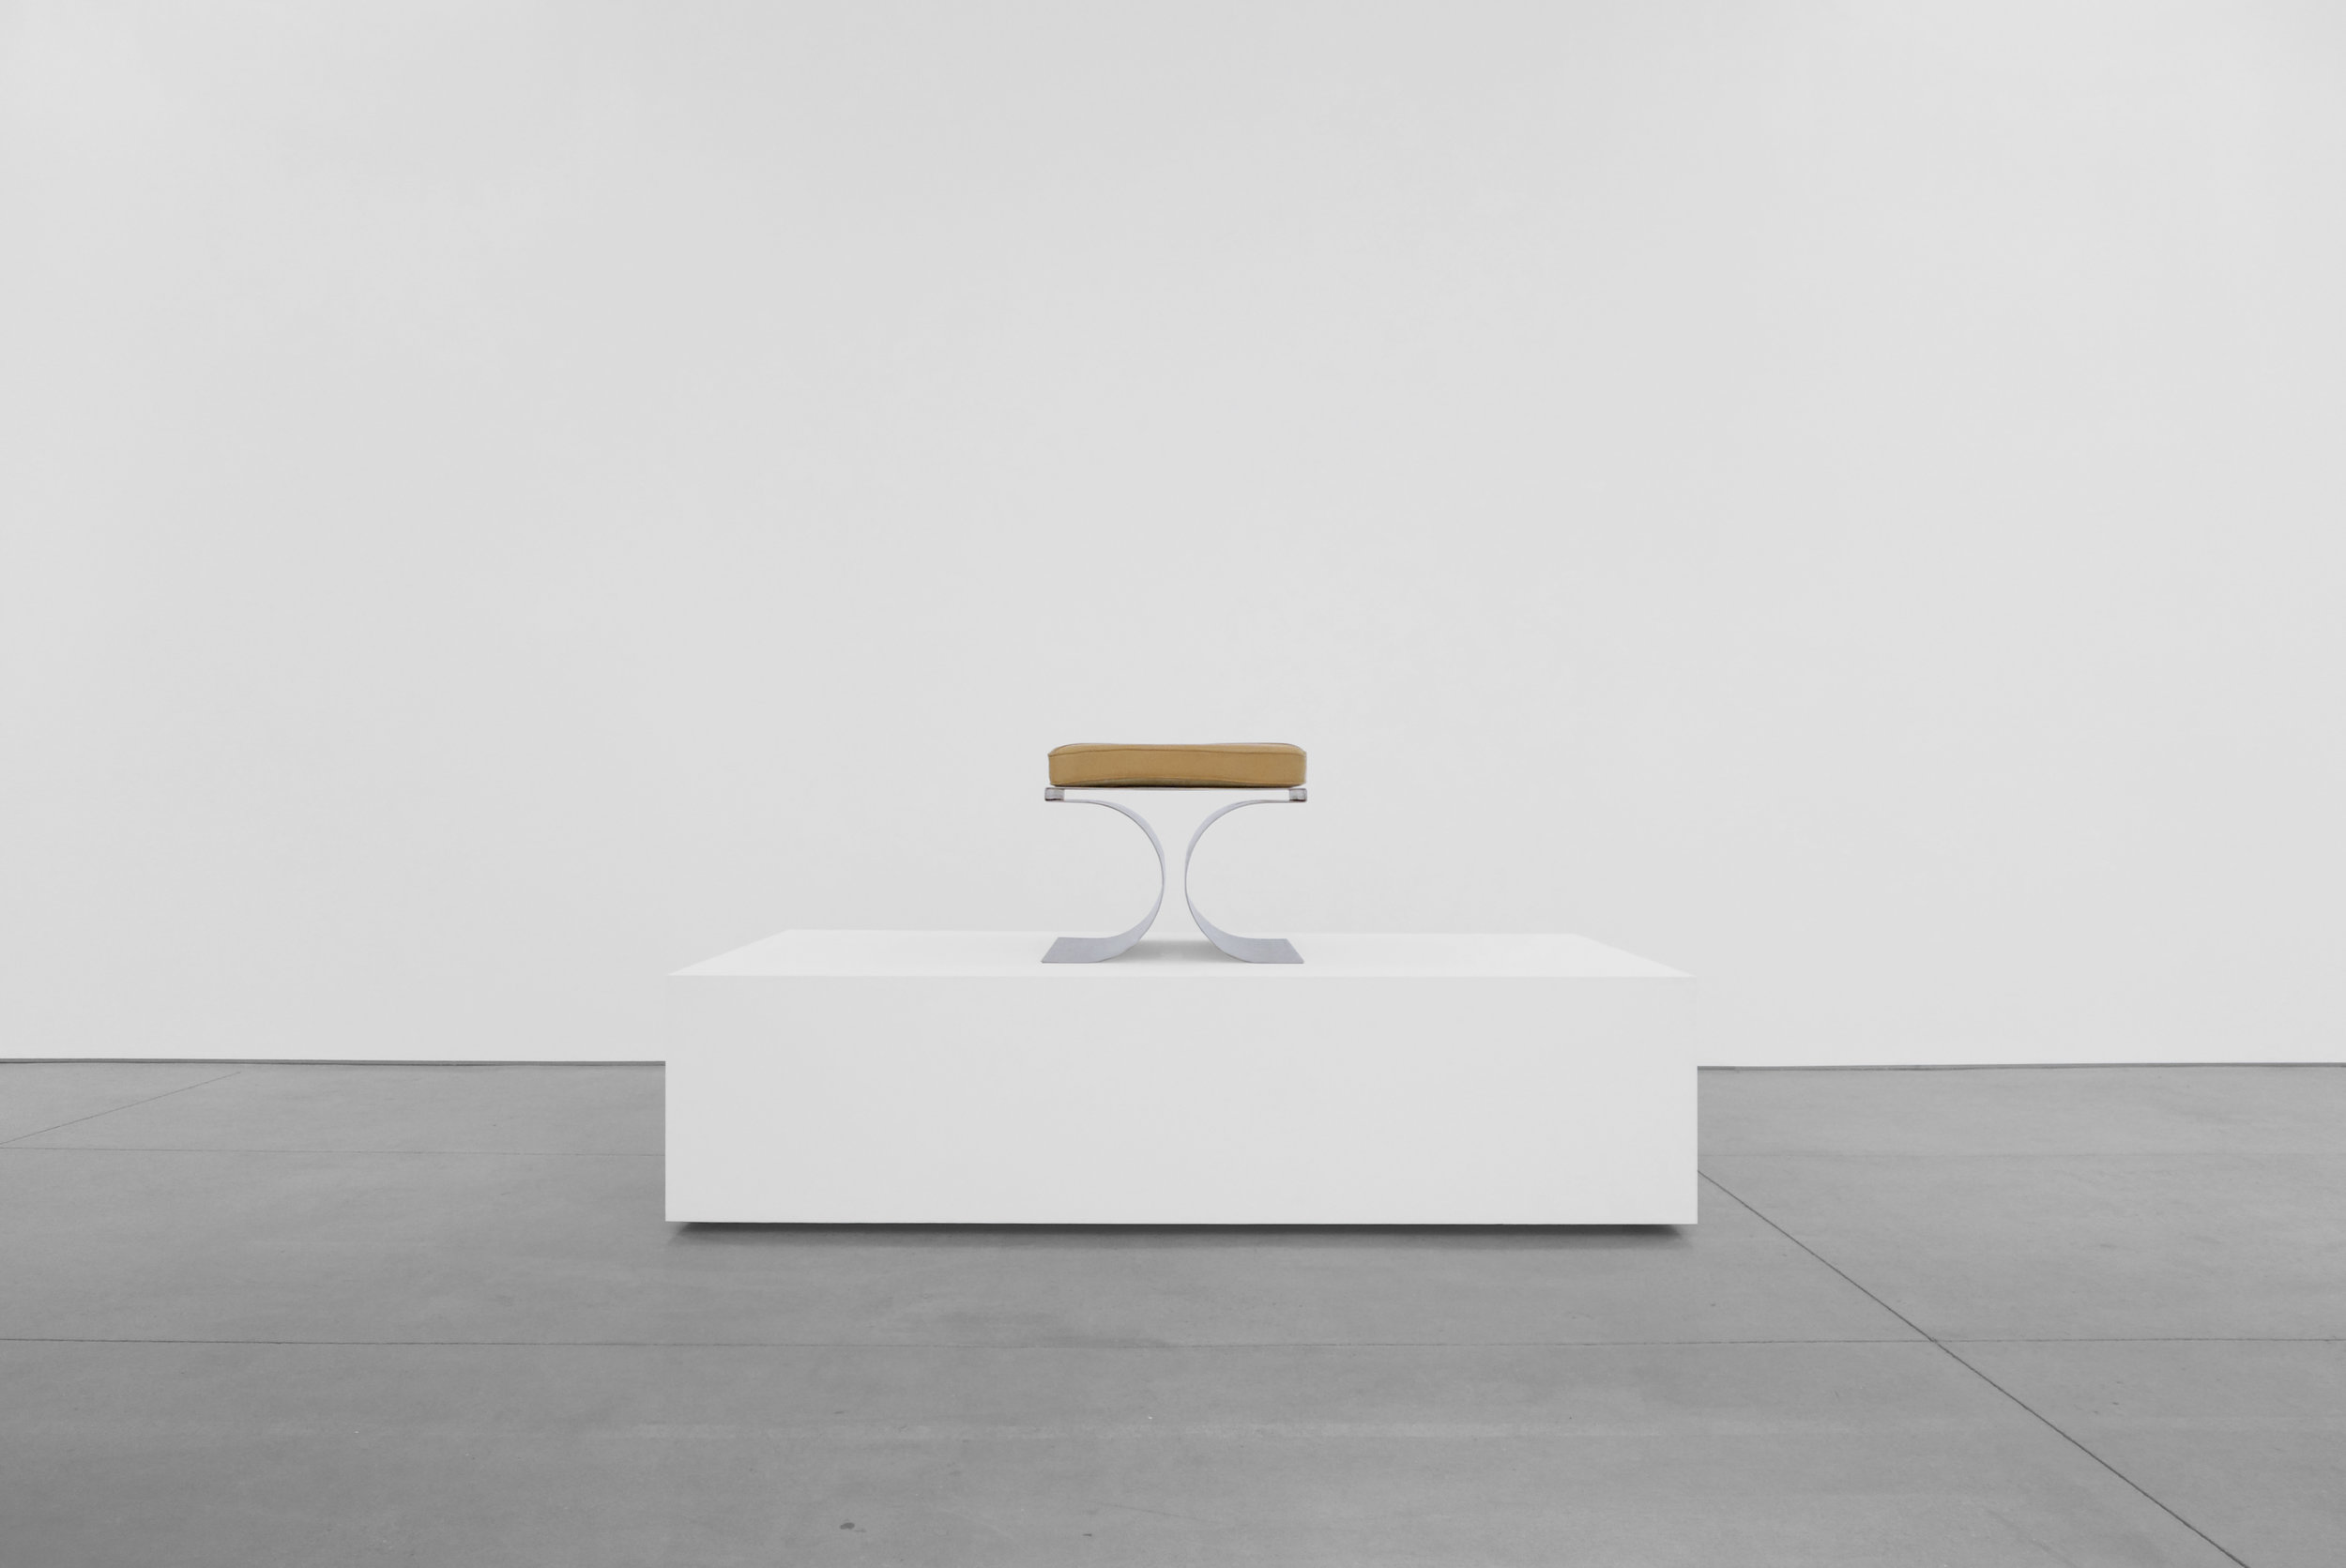 3. Micel Boyer, 'X' Stool, c. 1968, stainless steel and leather upholstery, 16H x 19.75W x 19.75D inches.jpg